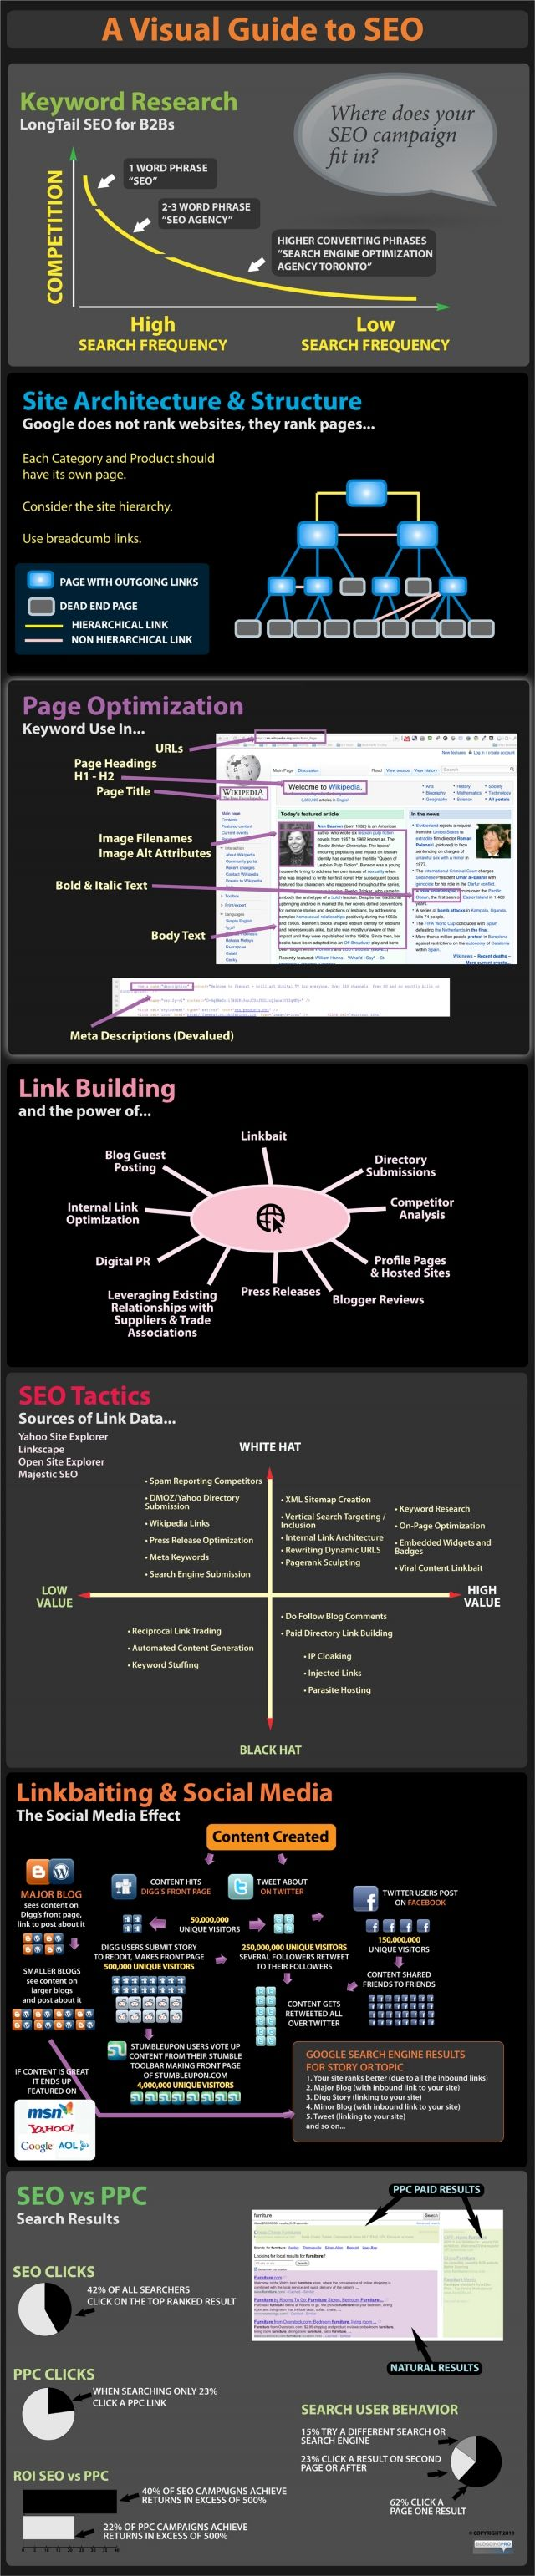 A Visual Guide to SEO We love SEO and infographics. Come visit us in Vienna, Austria or at http://www.ostheimer.at